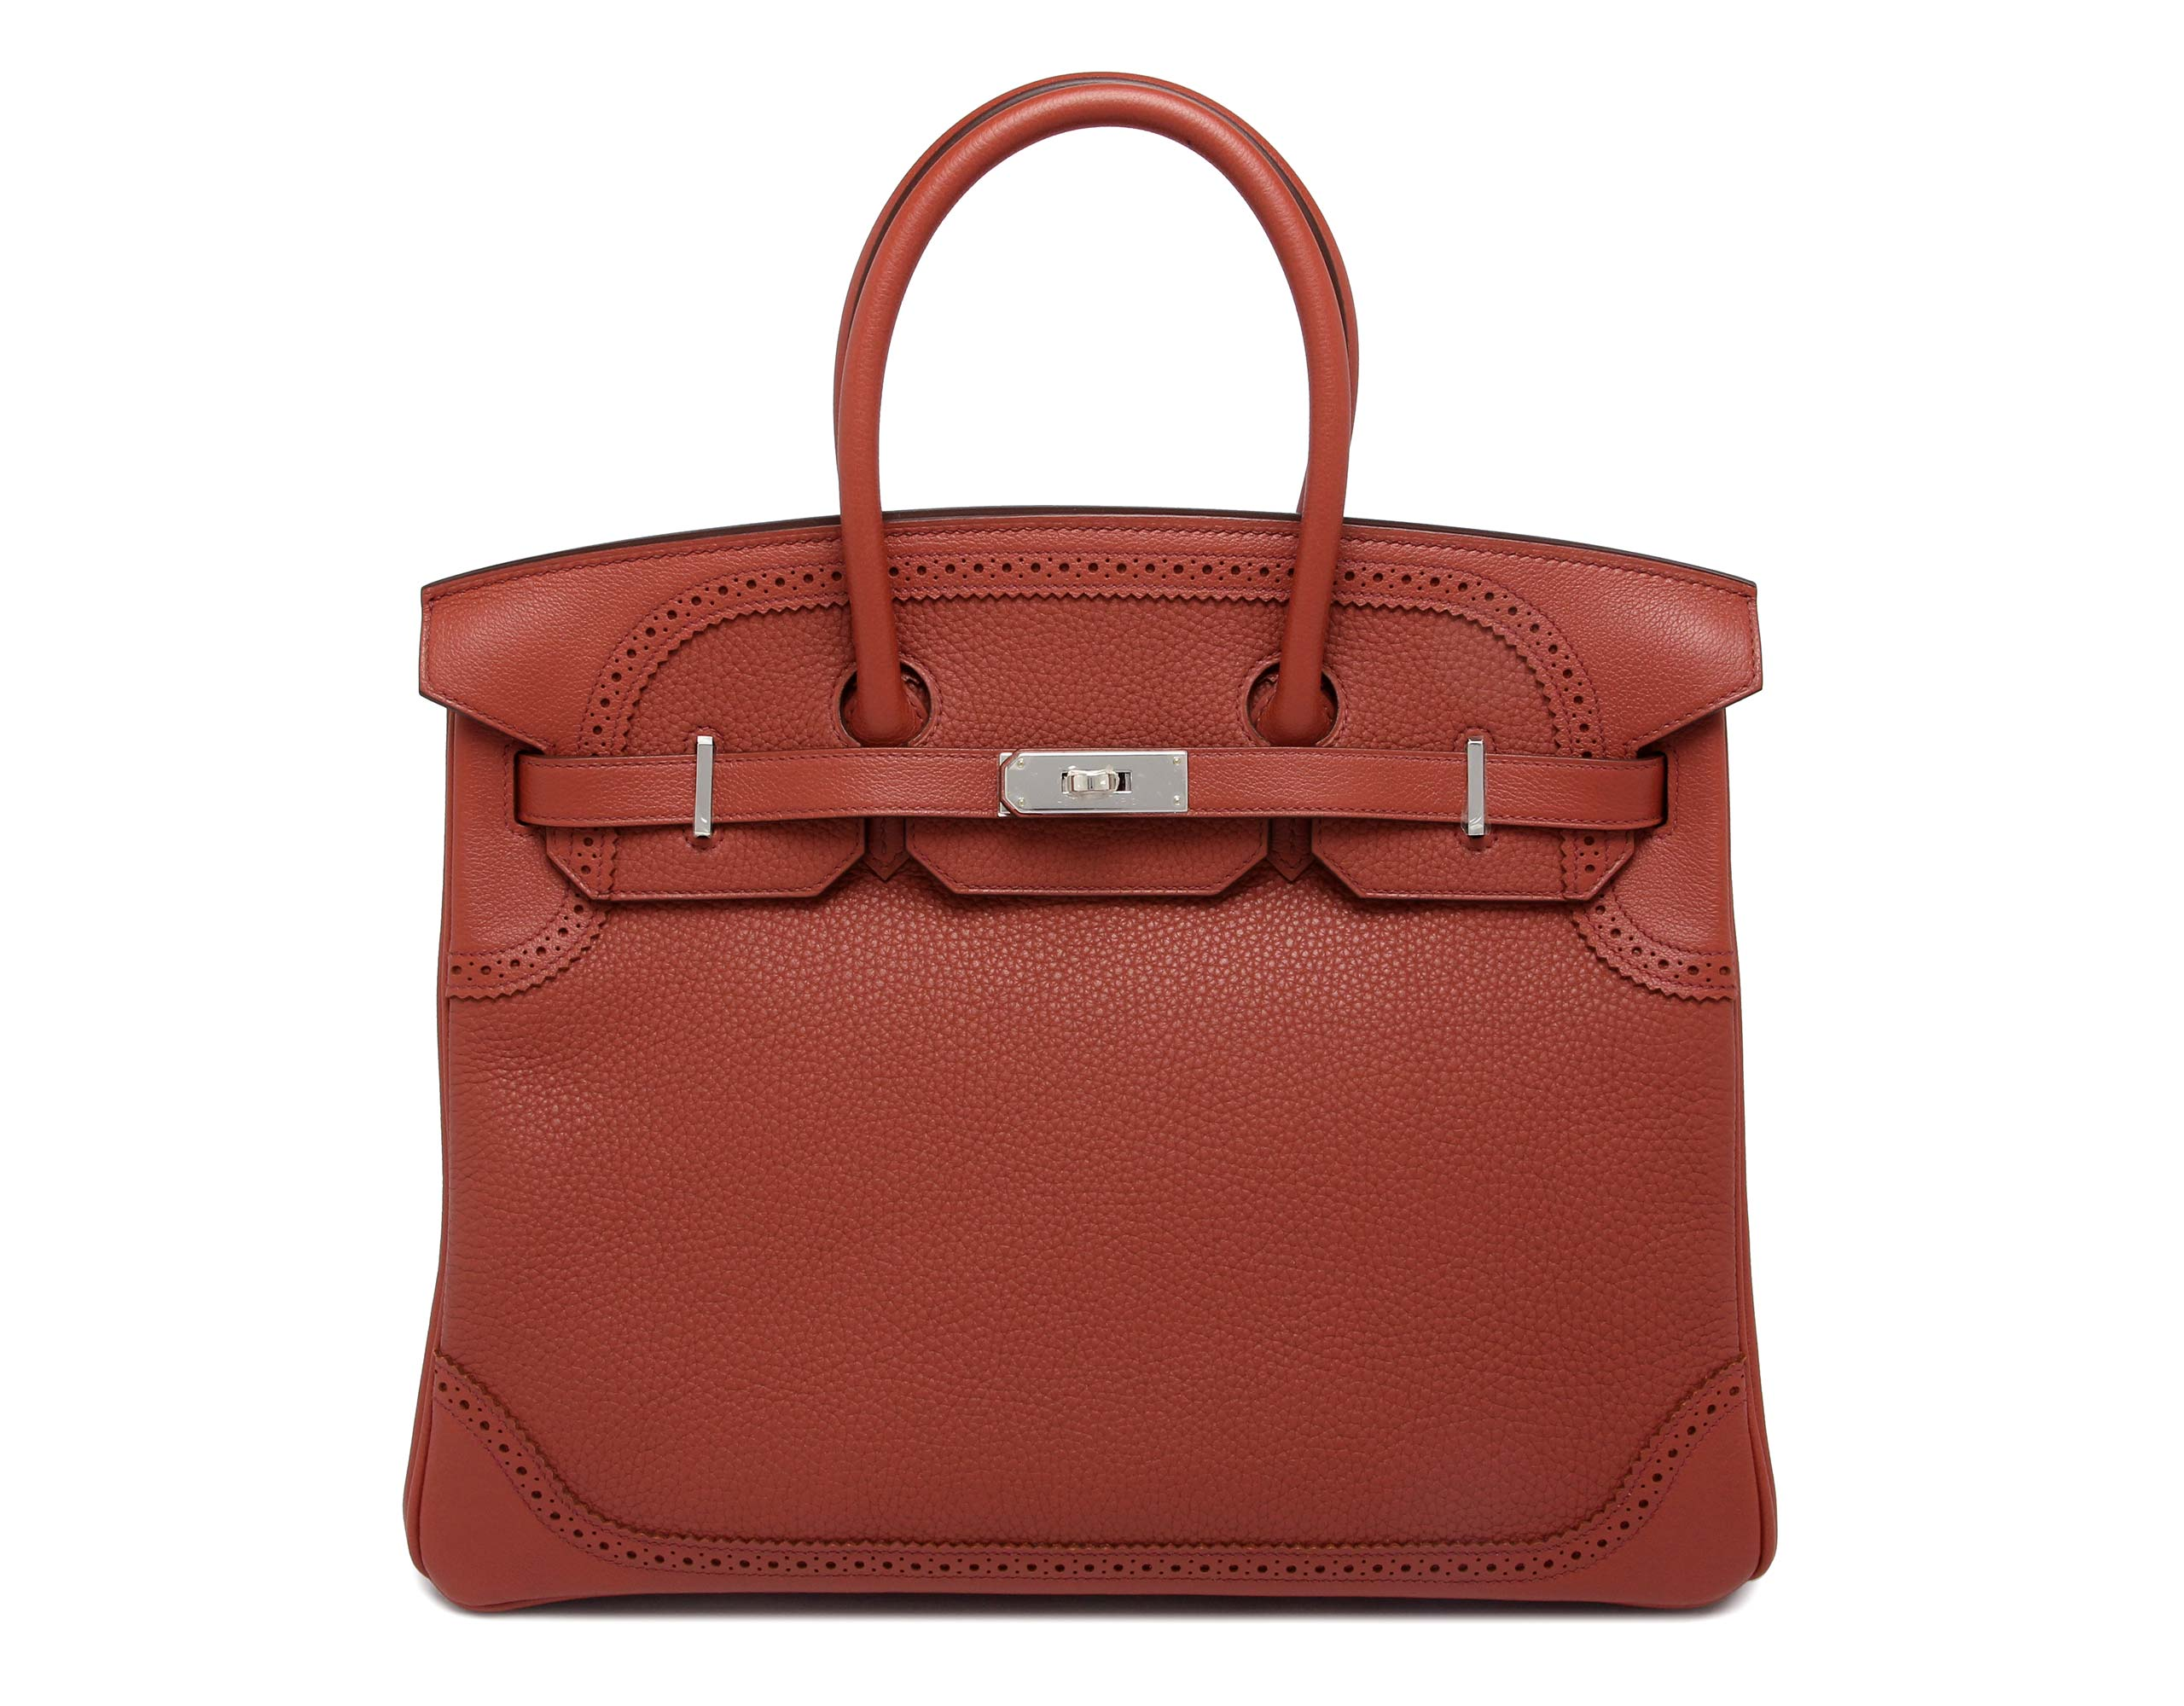 08a4519db6 Hermes Birkin Bags For Sale